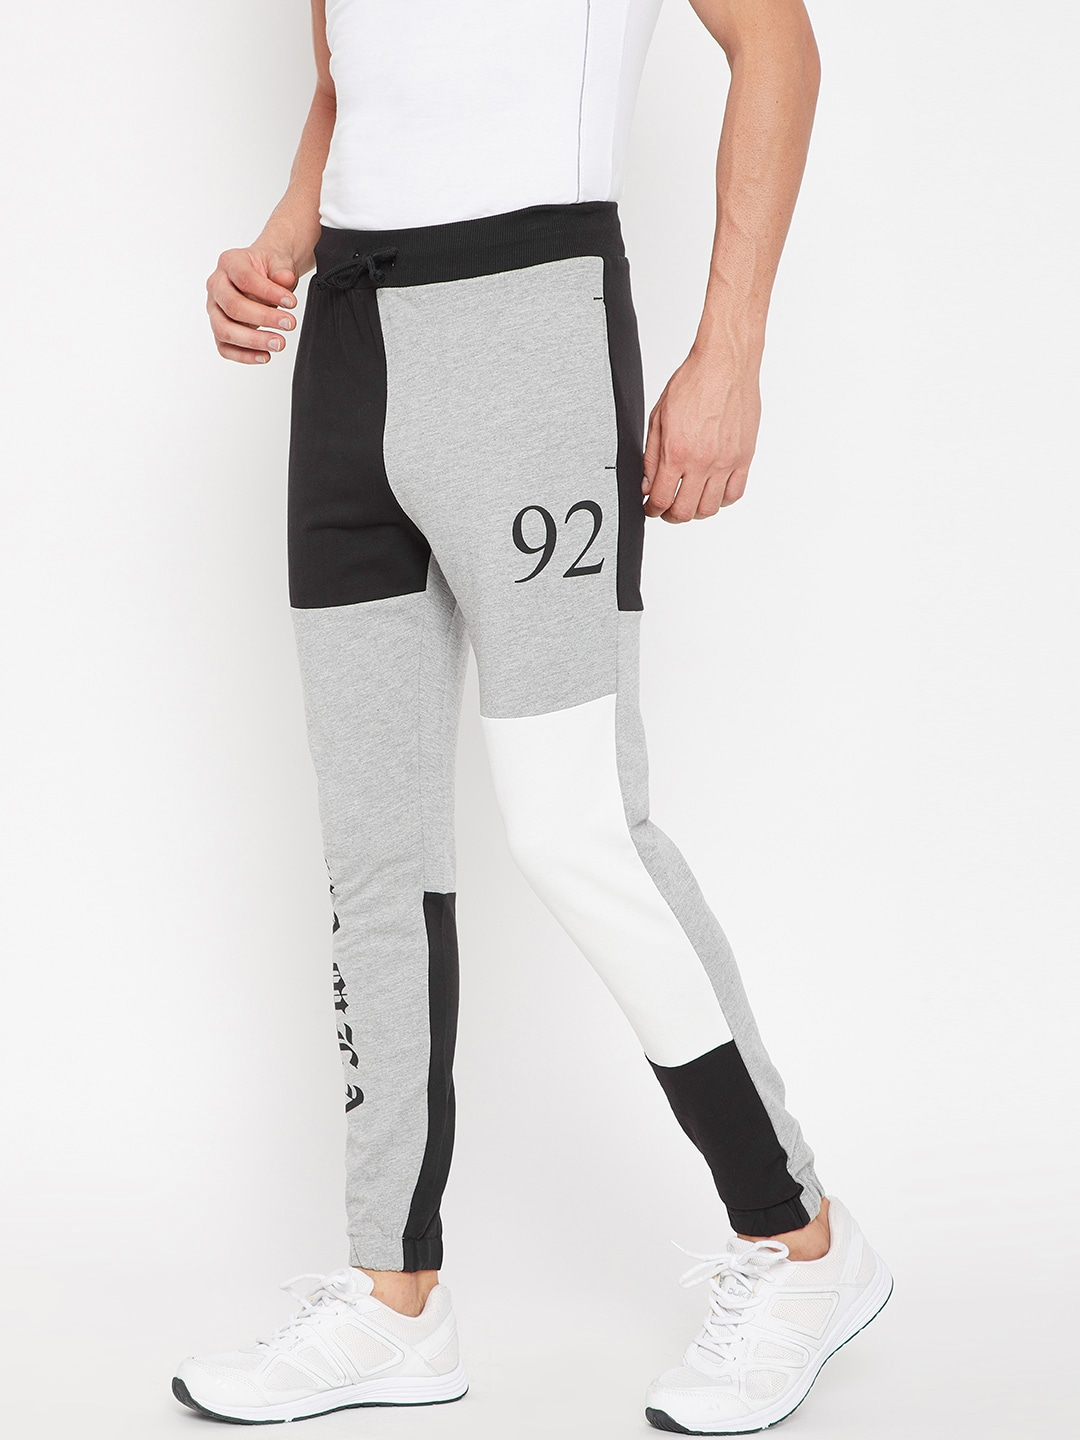 CAMLA Grey Melange & Black Colourblocked Joggers